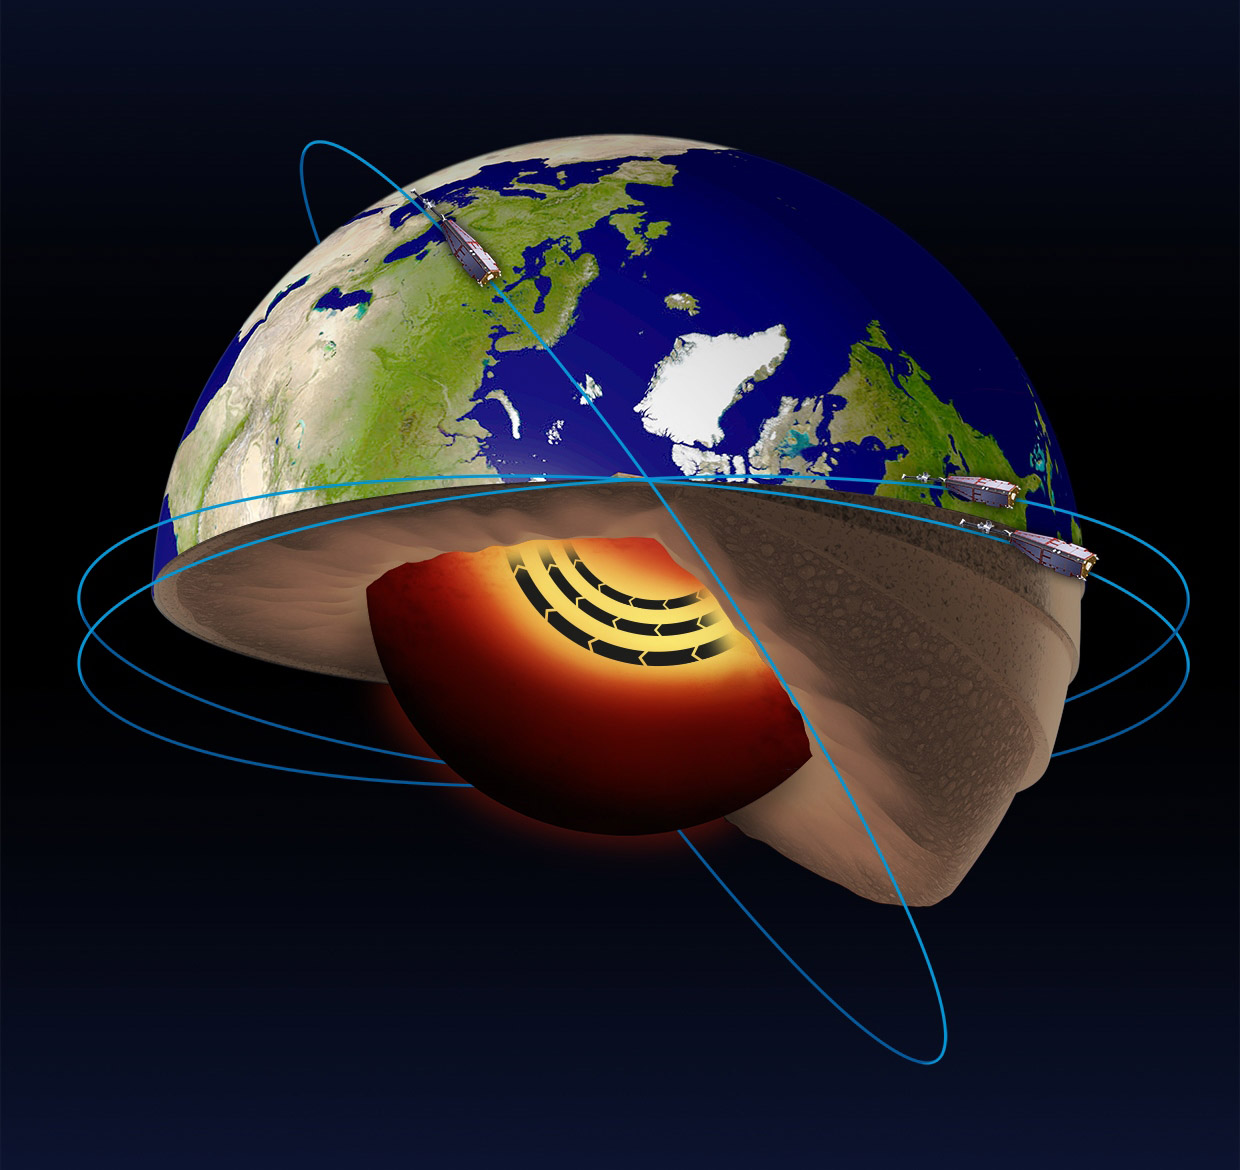 Earth has an internal jet stream at its core